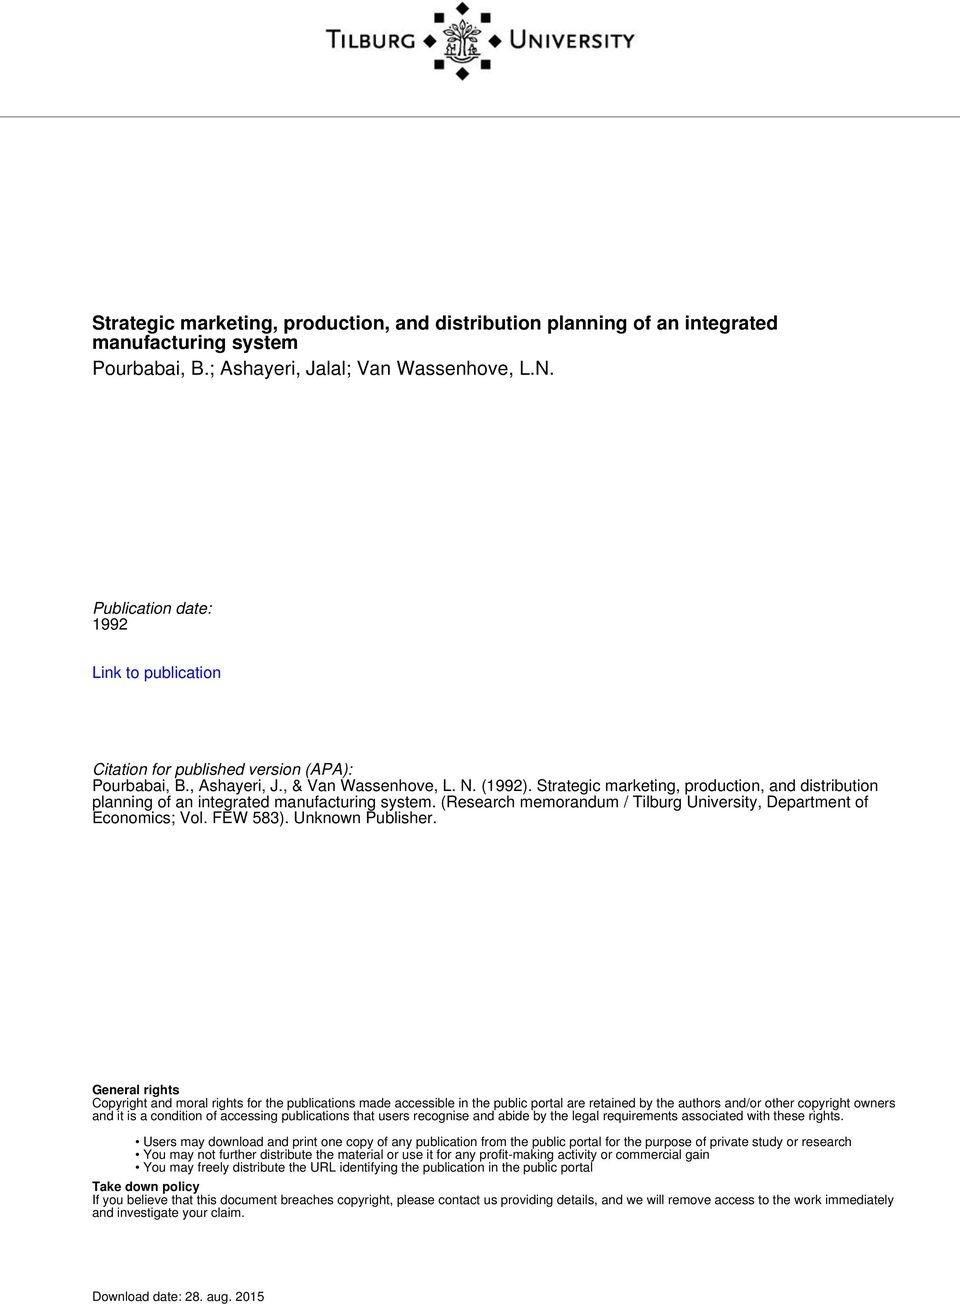 Strategic marketing, production, and distribution planning of an integrated manufacturing system. (Research memorandum / Tilburg University, Department of Economics; Vol. FEW 583). Unknown Publisher.